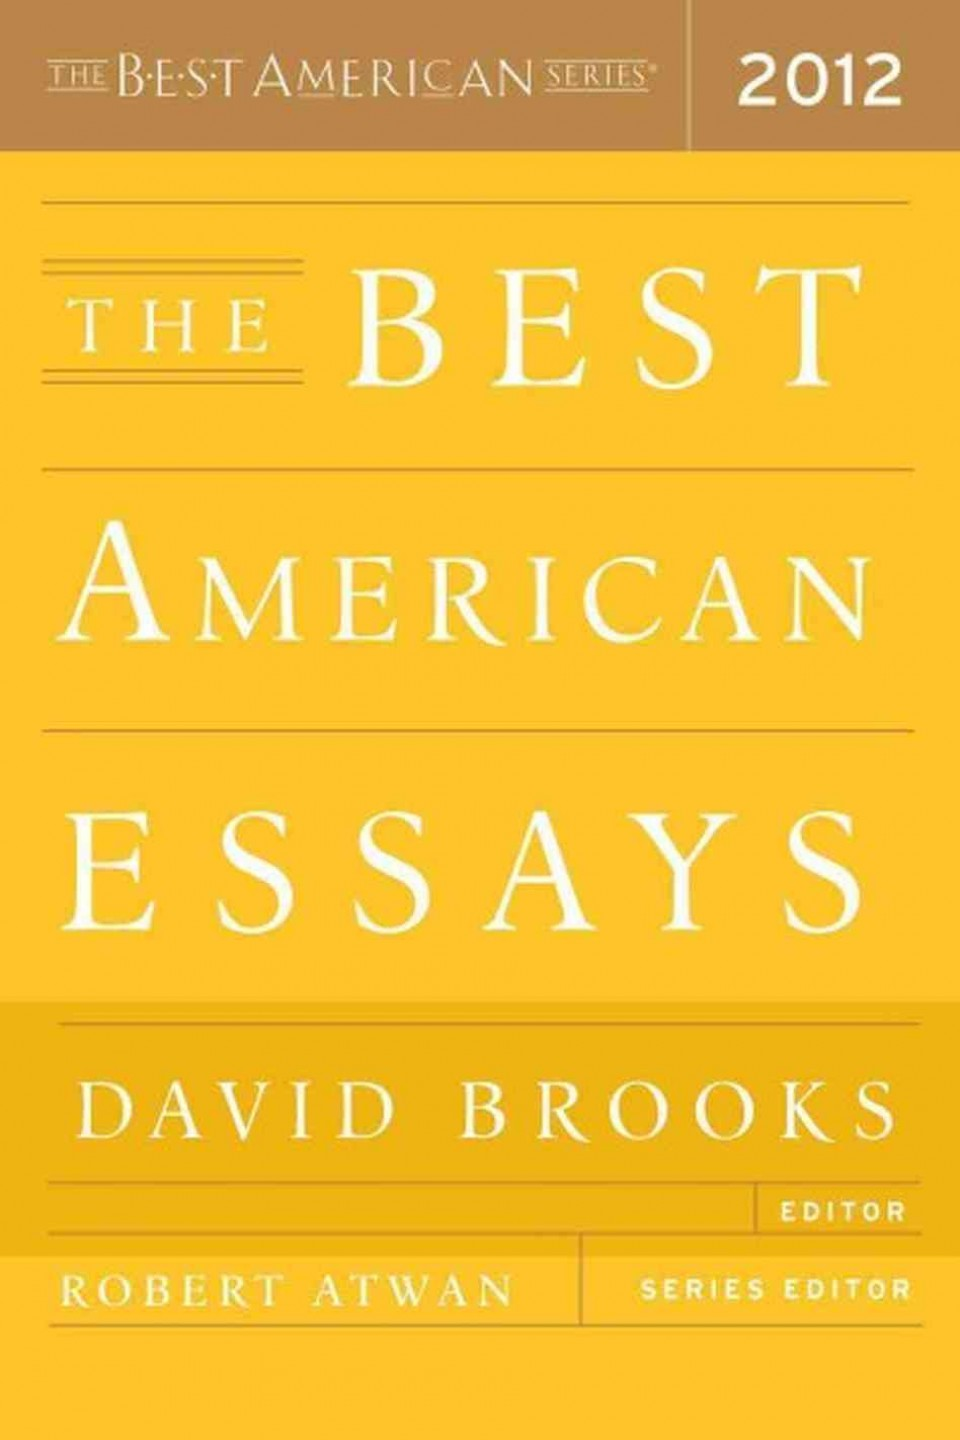 012 The Best American Essays 2012 Essay Wonderful 2013 Pdf Download Of Century Sparknotes 2017 960